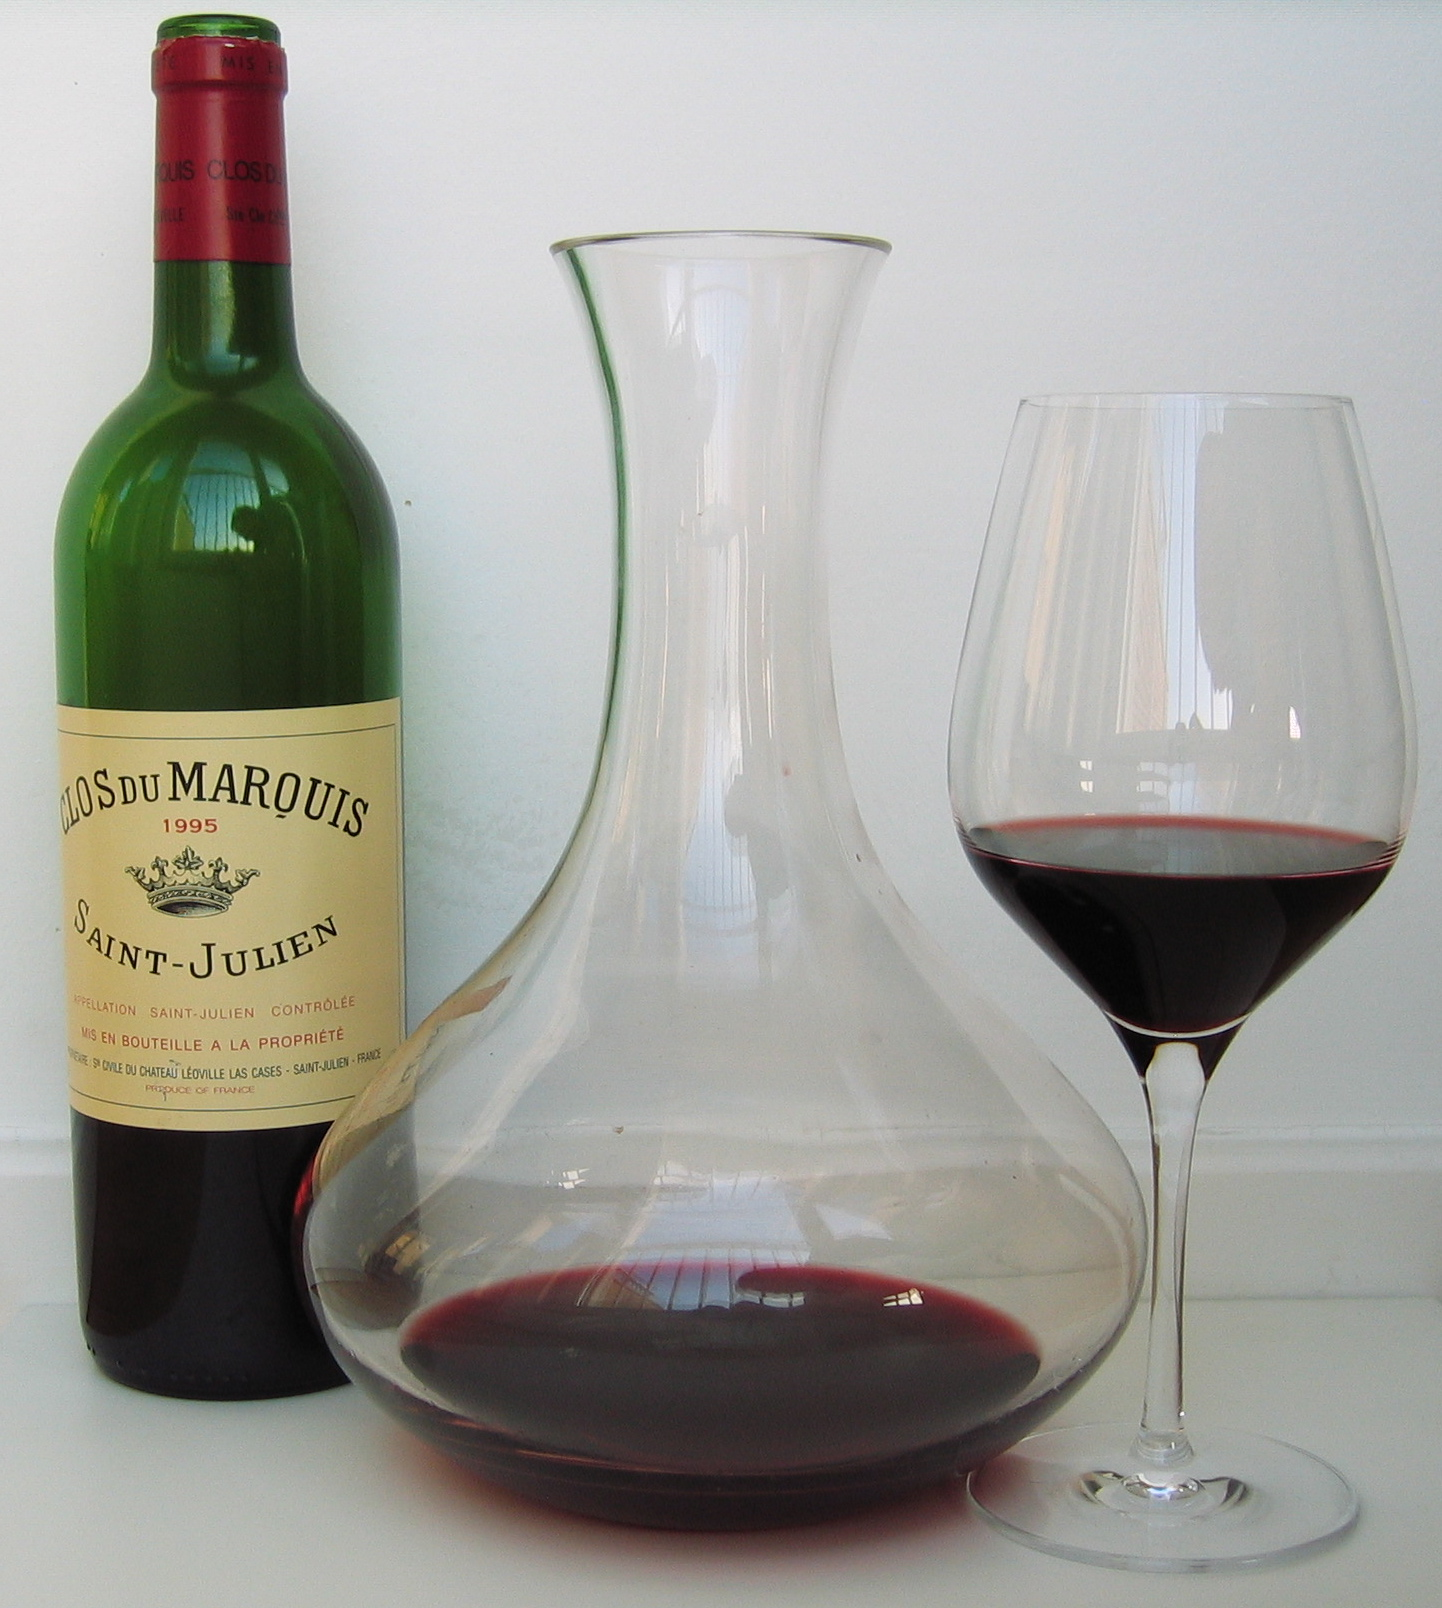 Clos du Marquis 1995 with decanter and glass.jpg